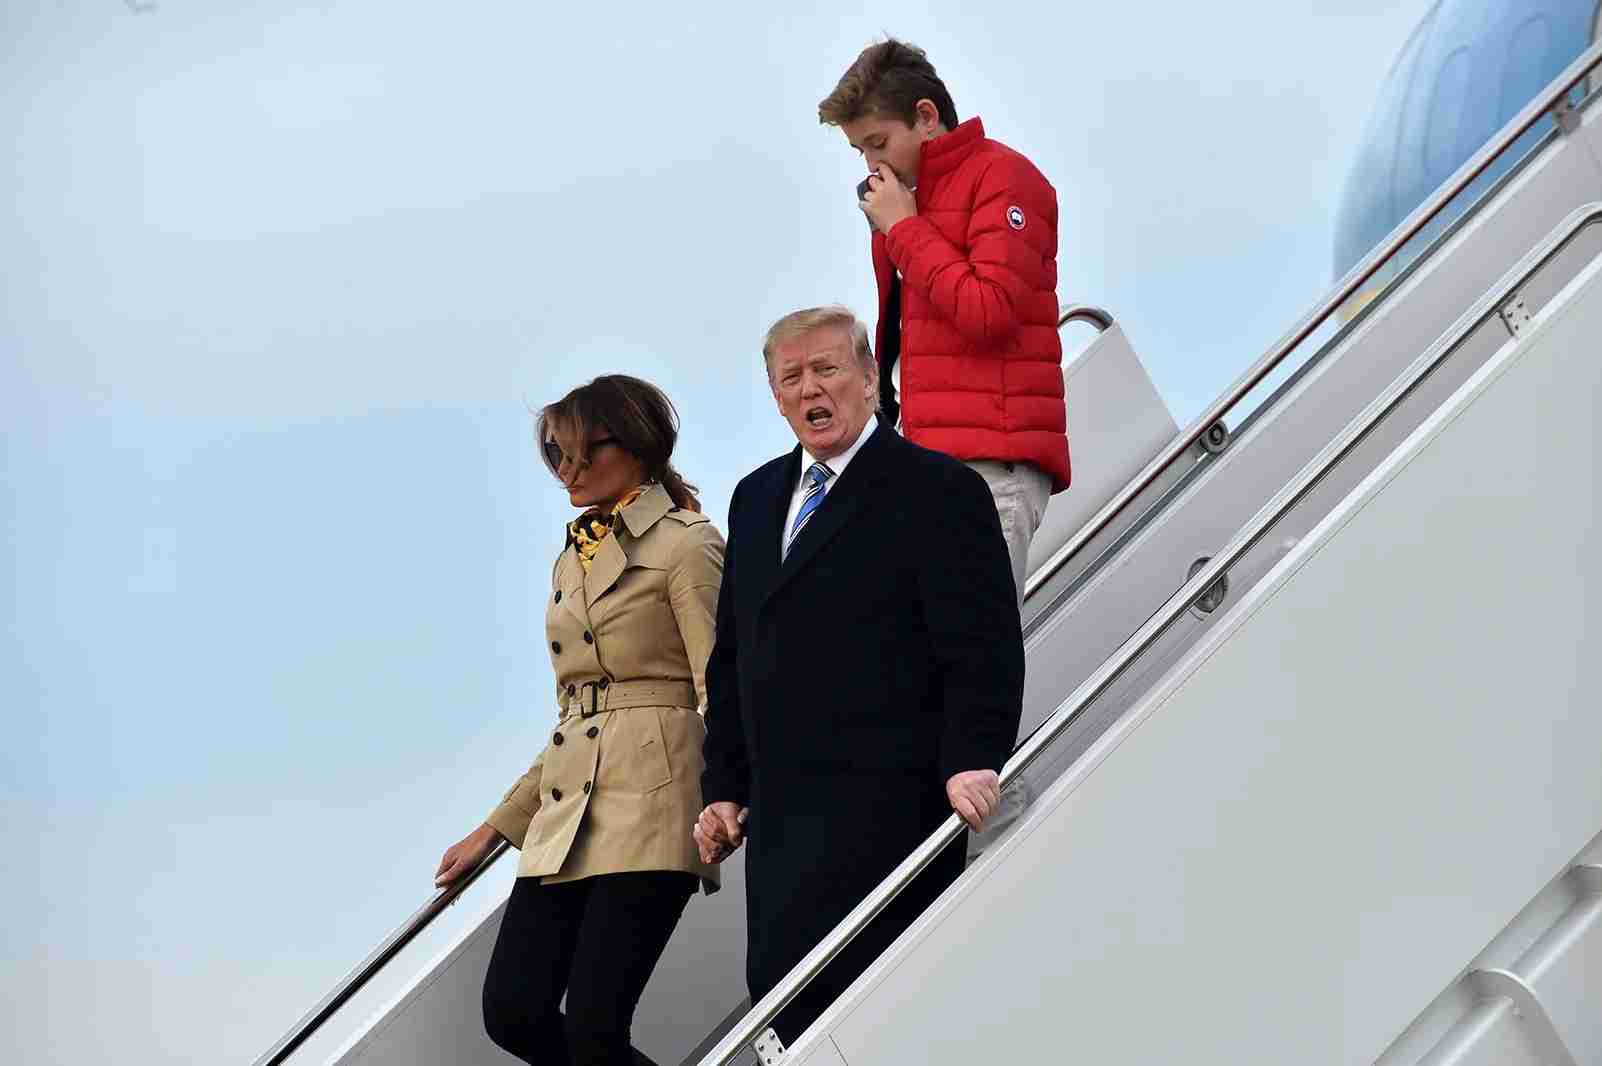 US President Donald Trump steps off Air Force One with first lady Melania and son Barron at Andrews Air Force Base in Maryland following the weekend at Trump